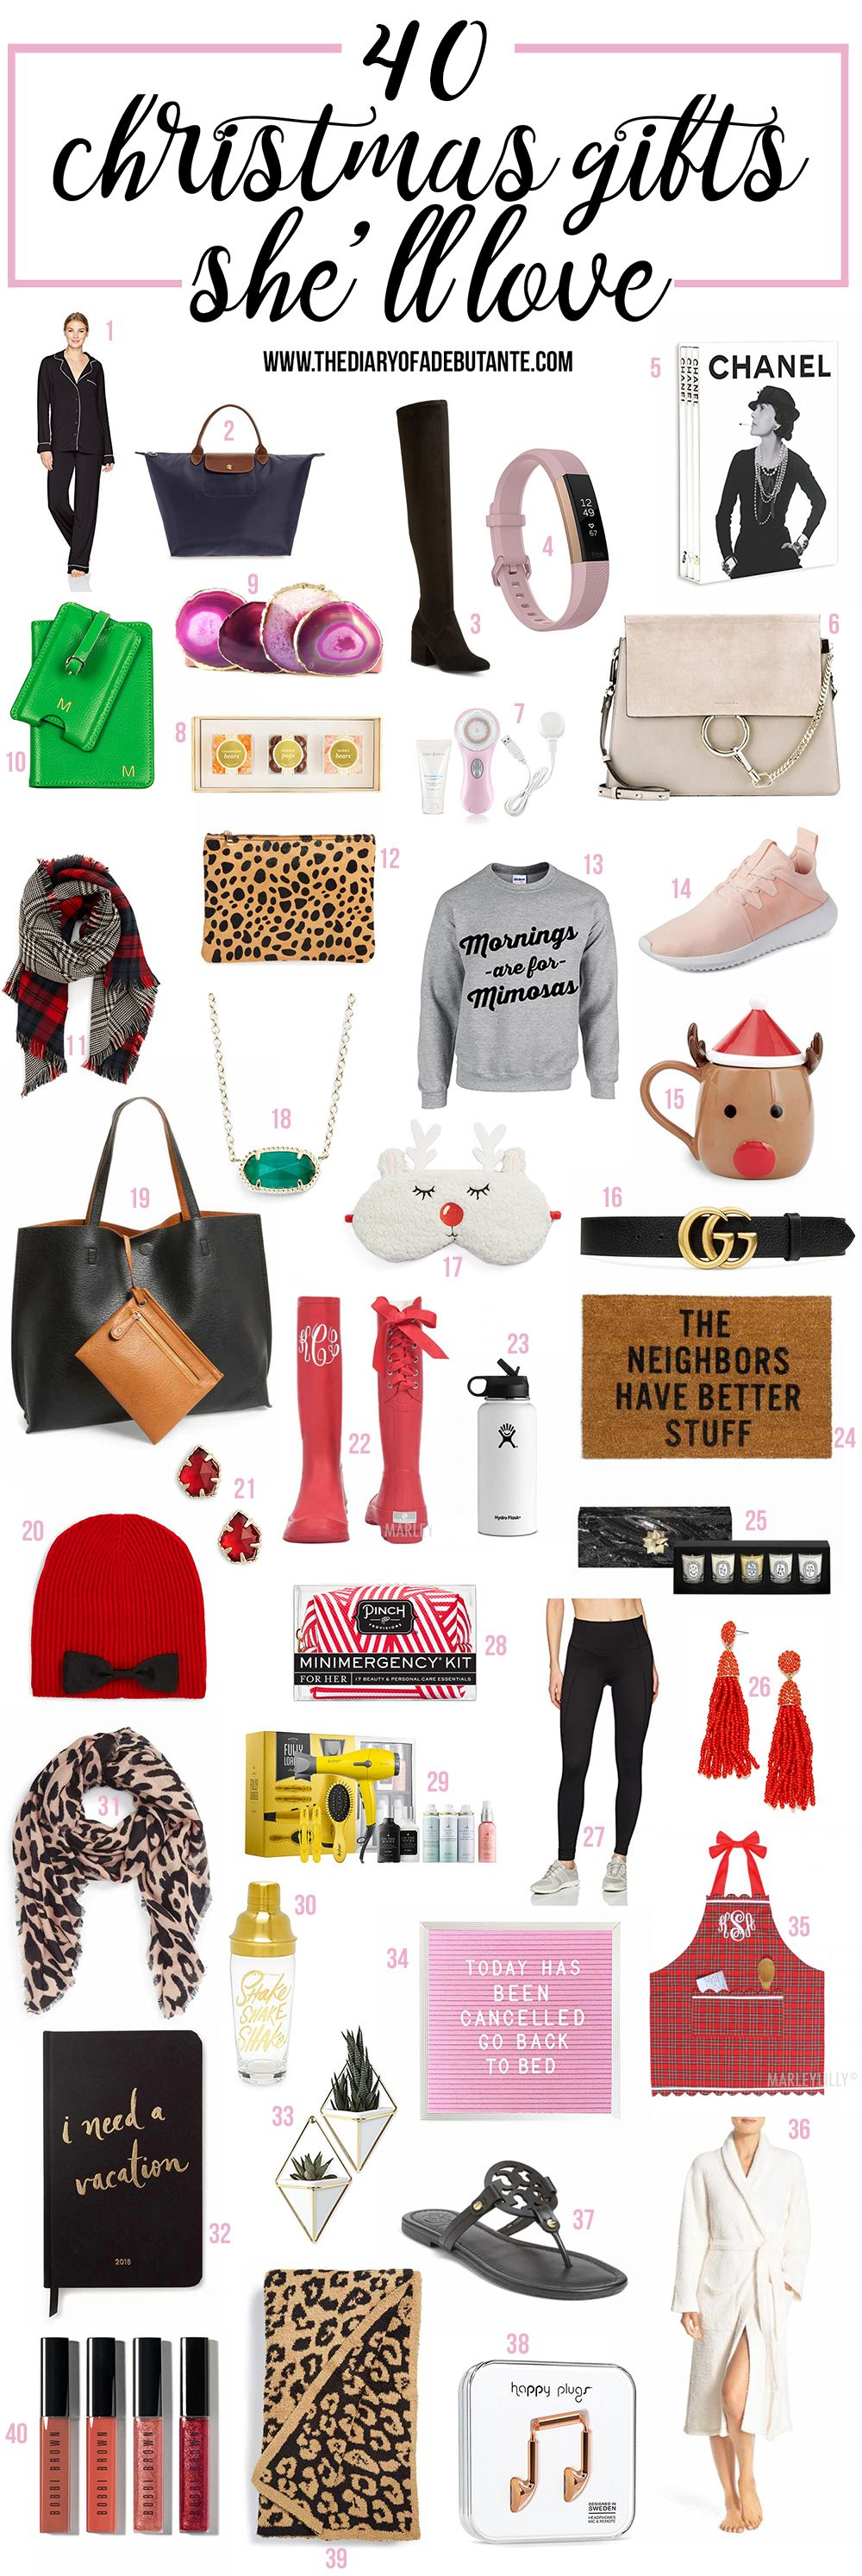 Cool Gift Ideas For Girlfriend Mom Or Bff This Holiday Season Christmas Gifts For Girlfriend Birthday Presents For Girlfriend Presents For Girlfriend